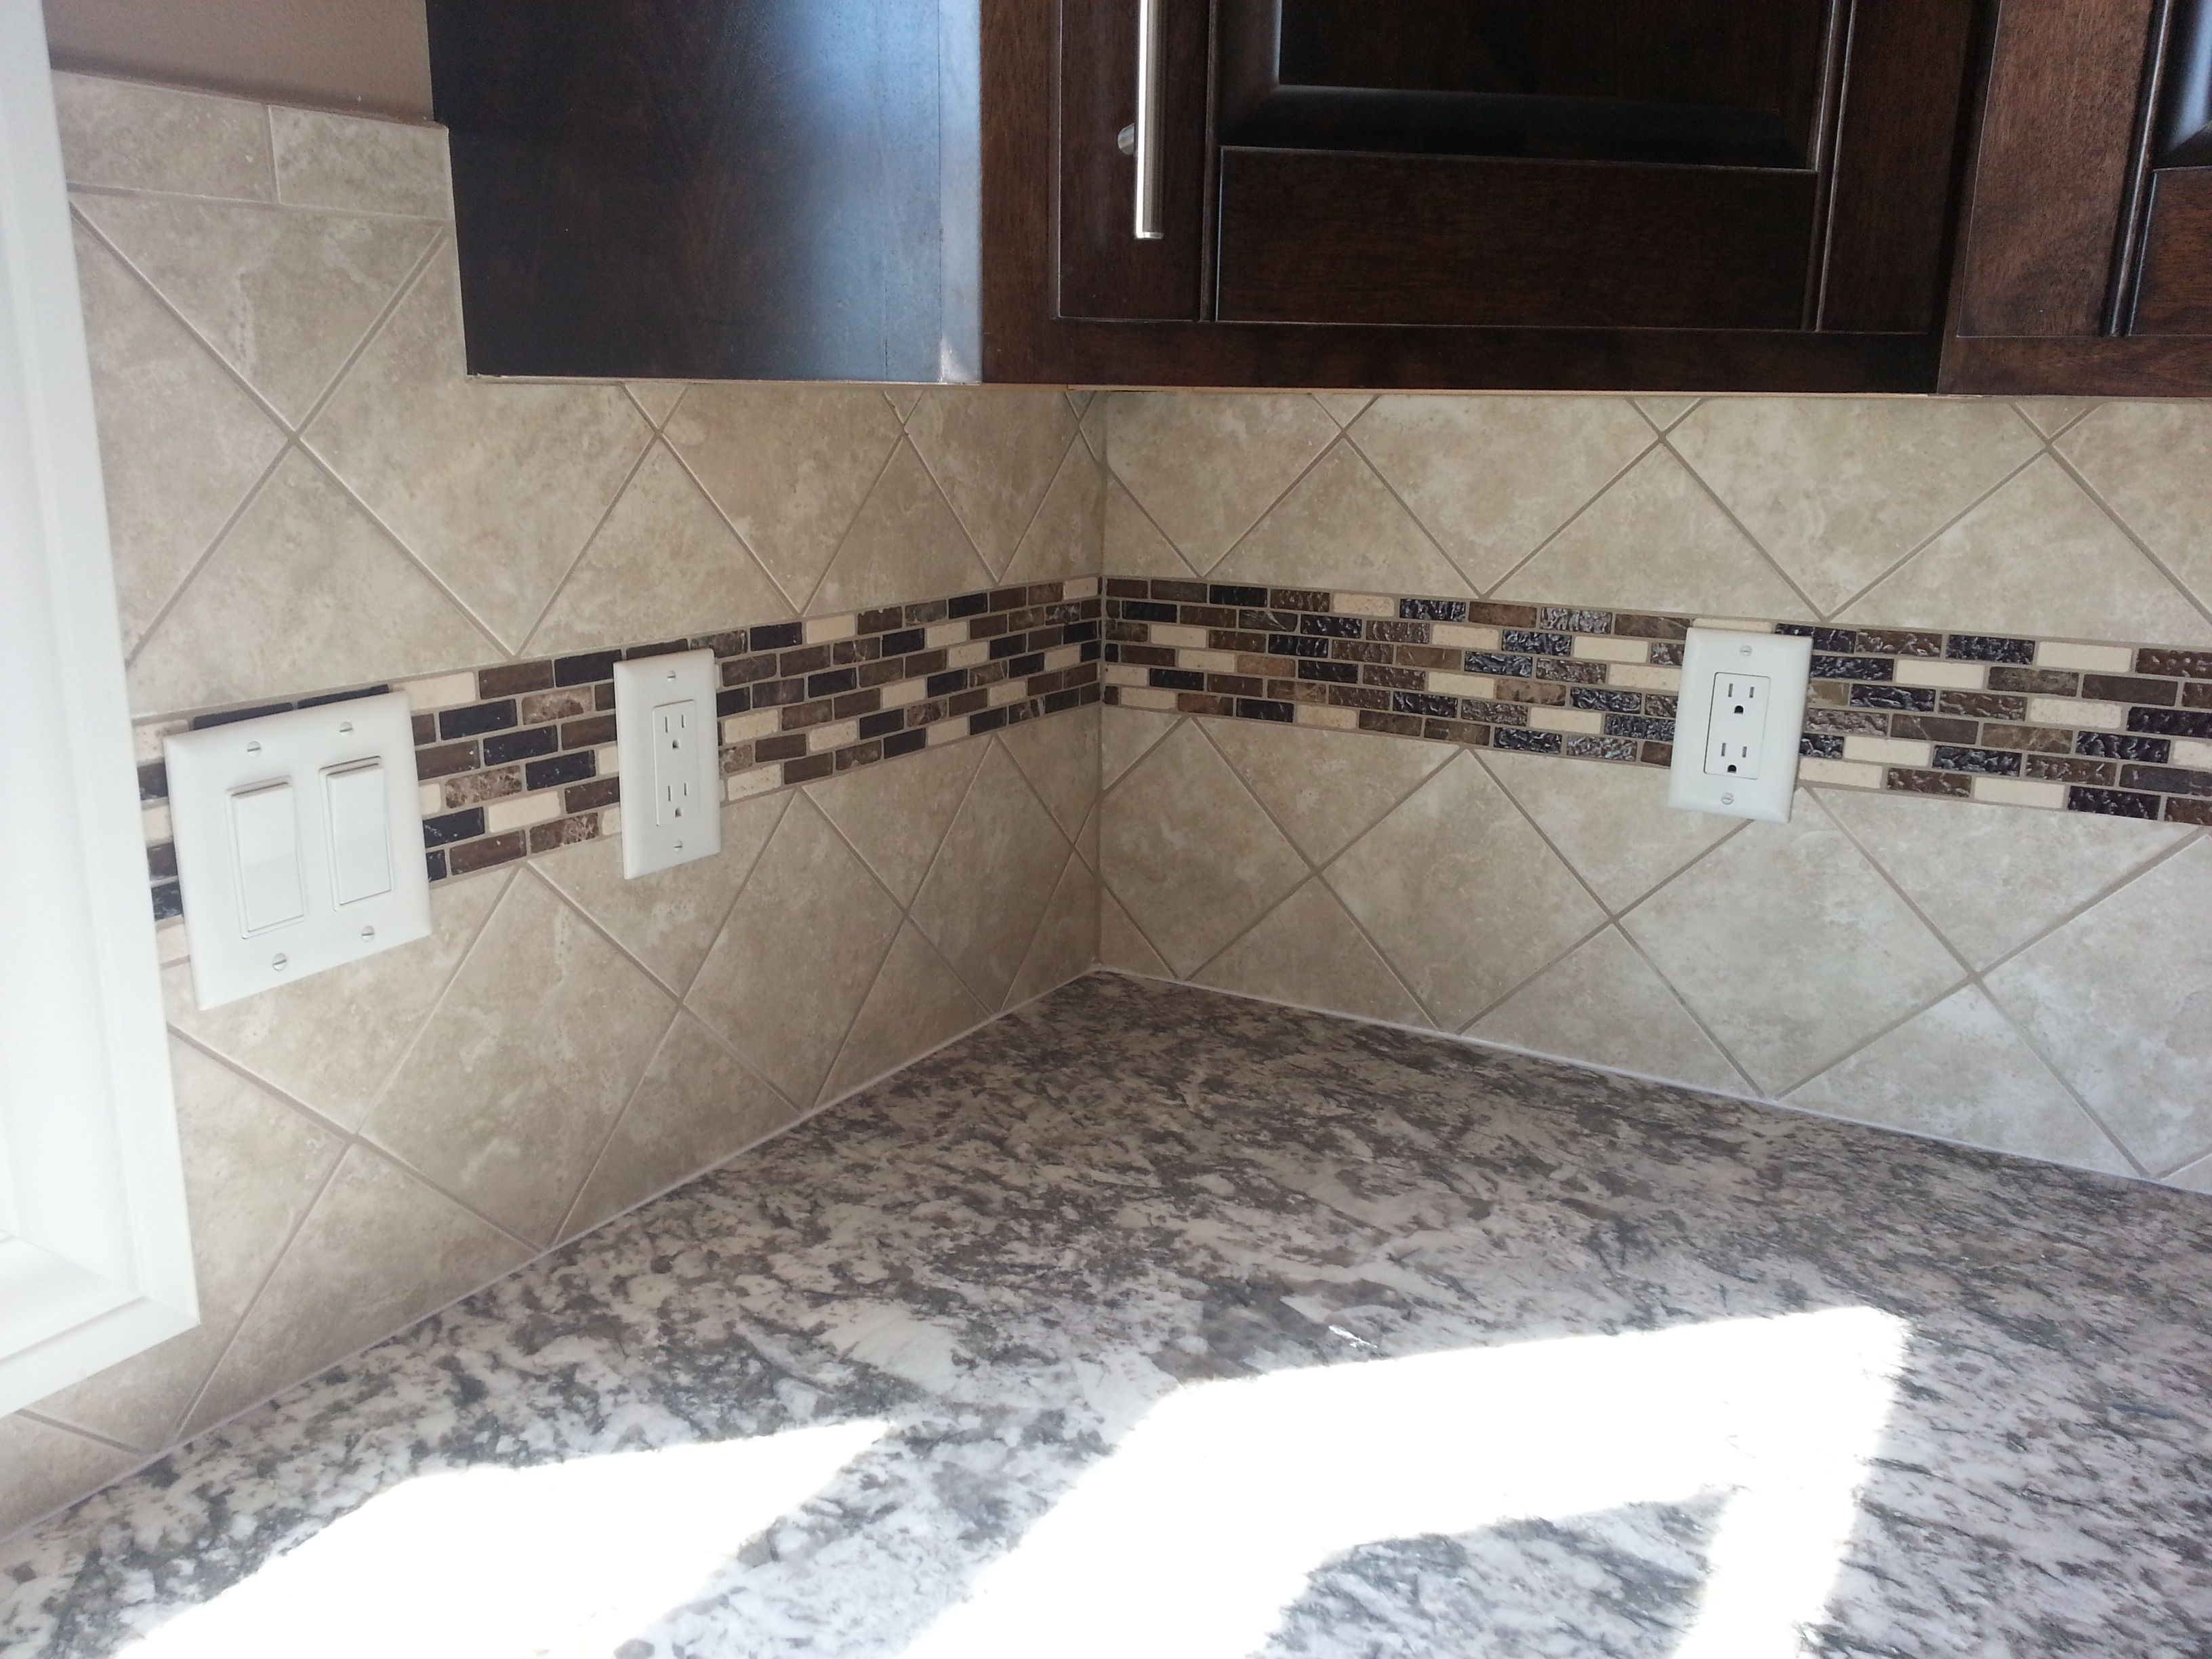 X Tile Backsplash Set At An Diagonal With An Accent Stripe Going - 4x4 white tile with gold specks